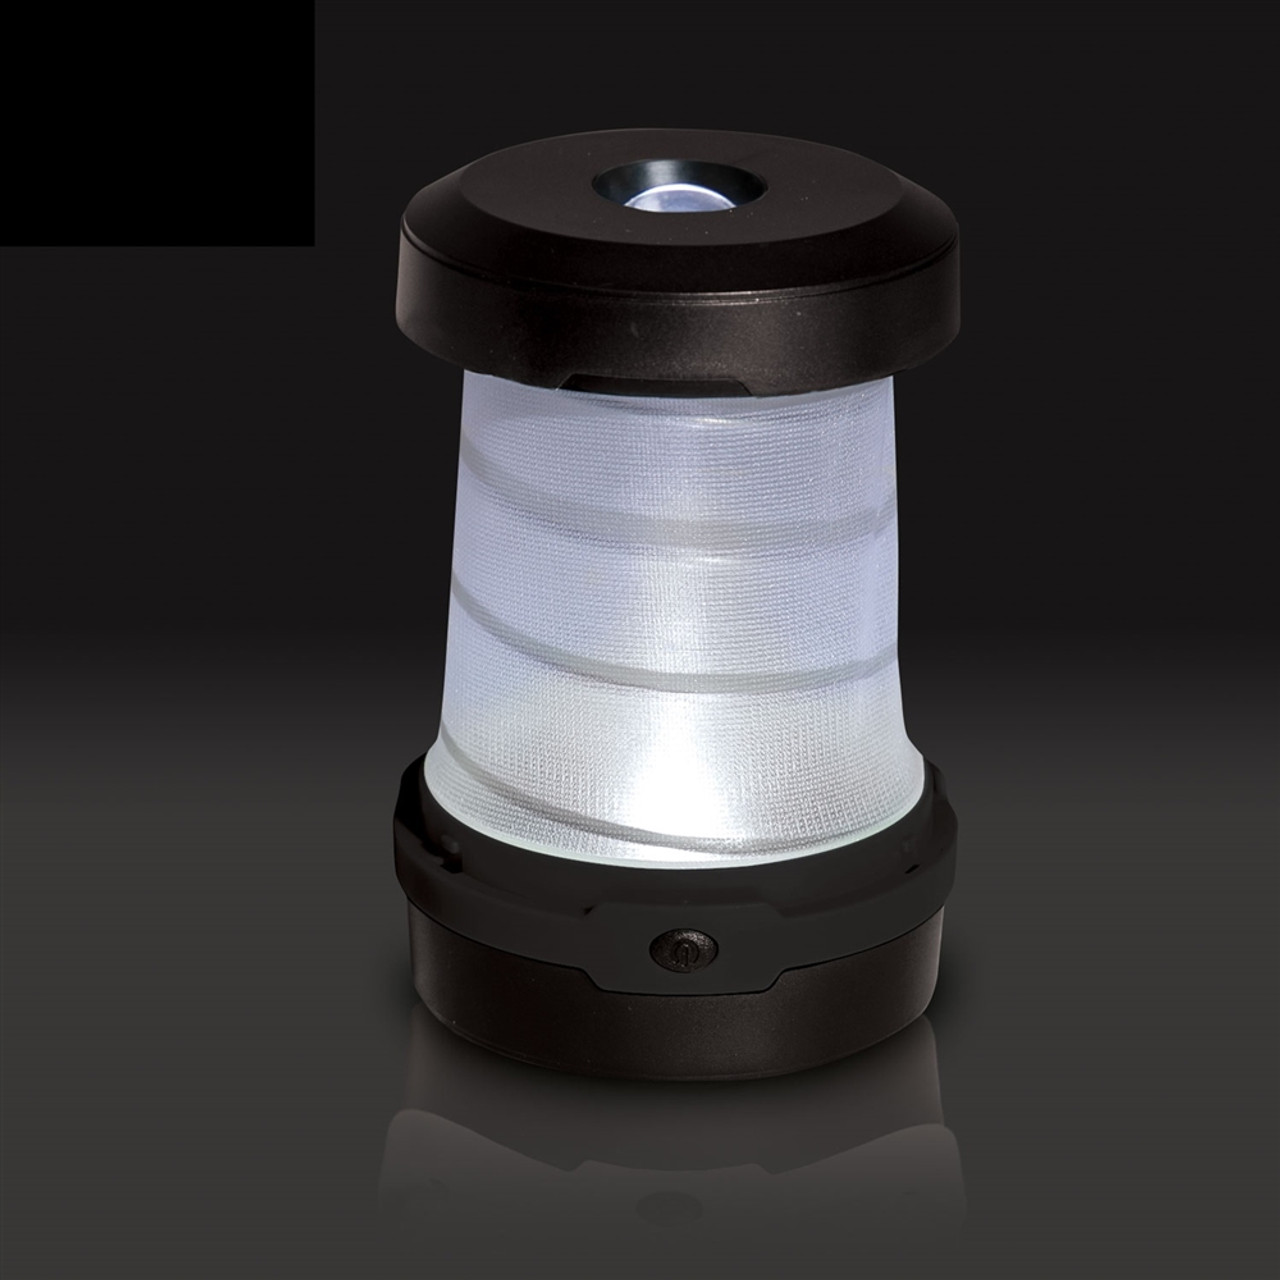 Pop-Up Solar Lantern And Charger from Hessen Antique